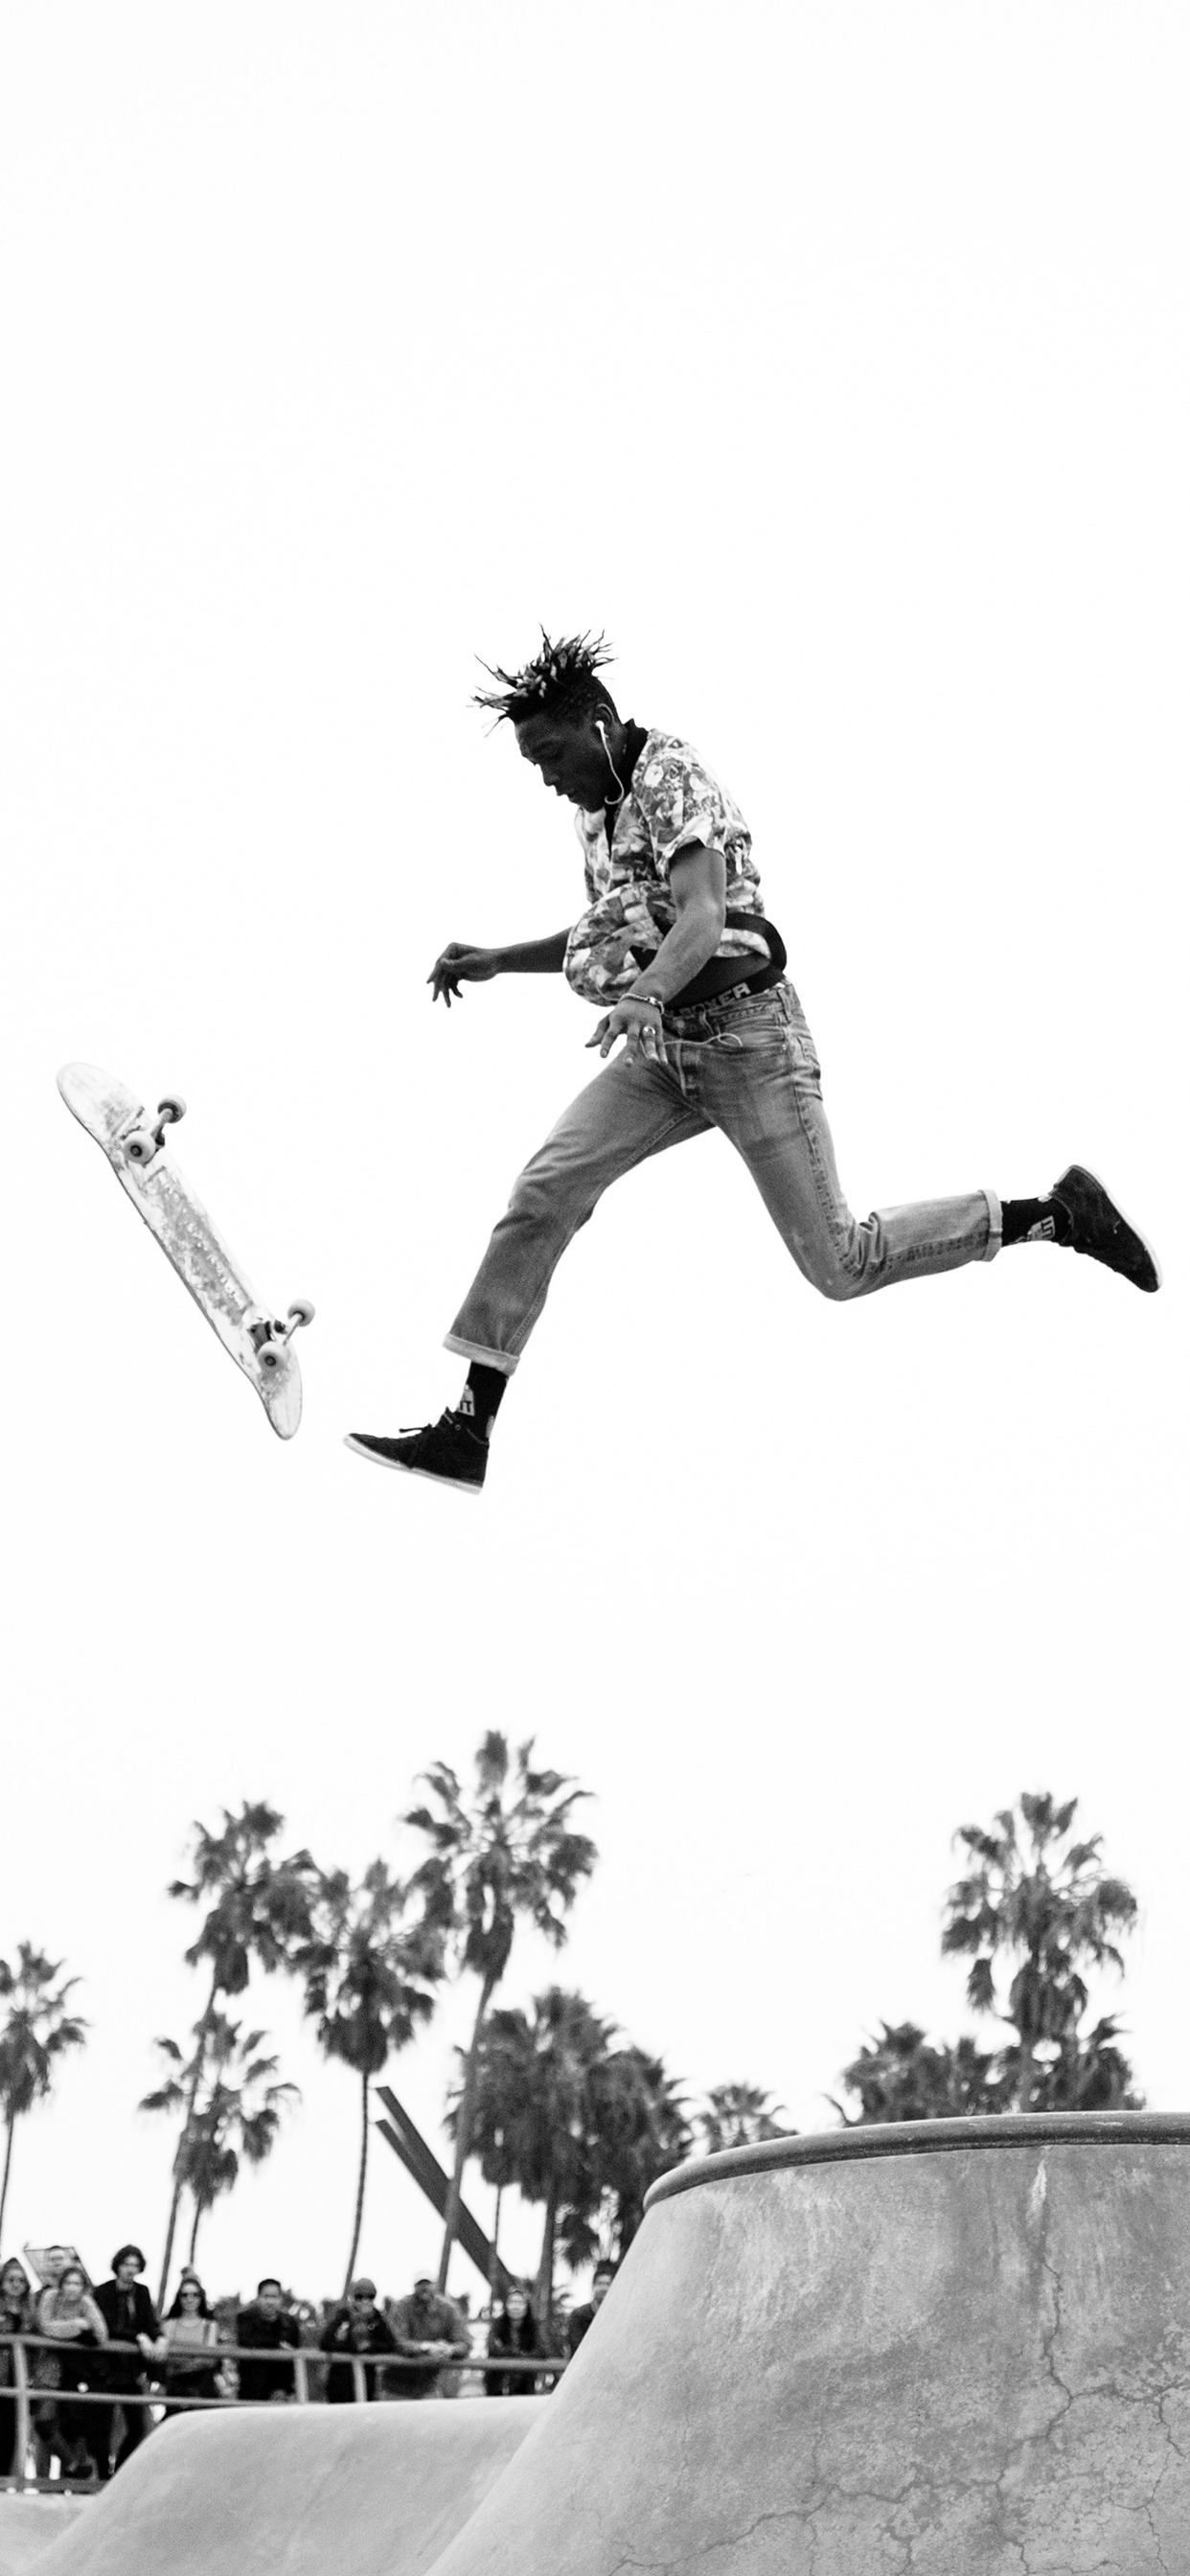 iPhone wallpaper skater black white Skater